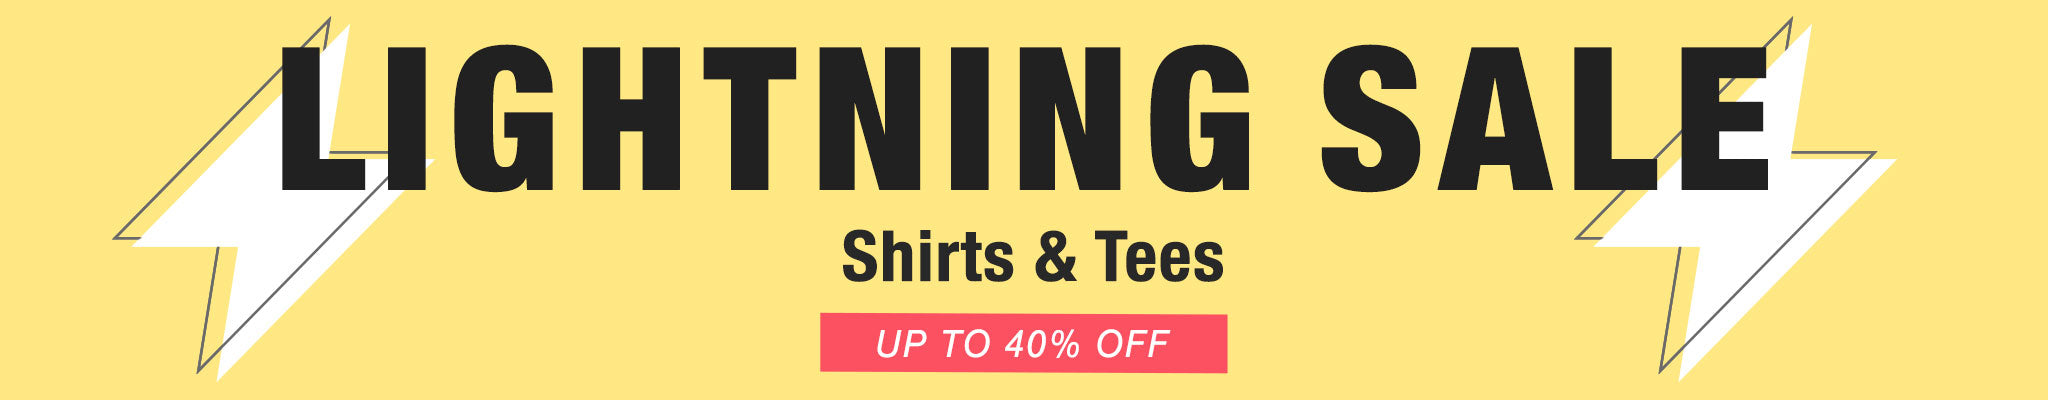 Lightning Sale - Shirts & Tees